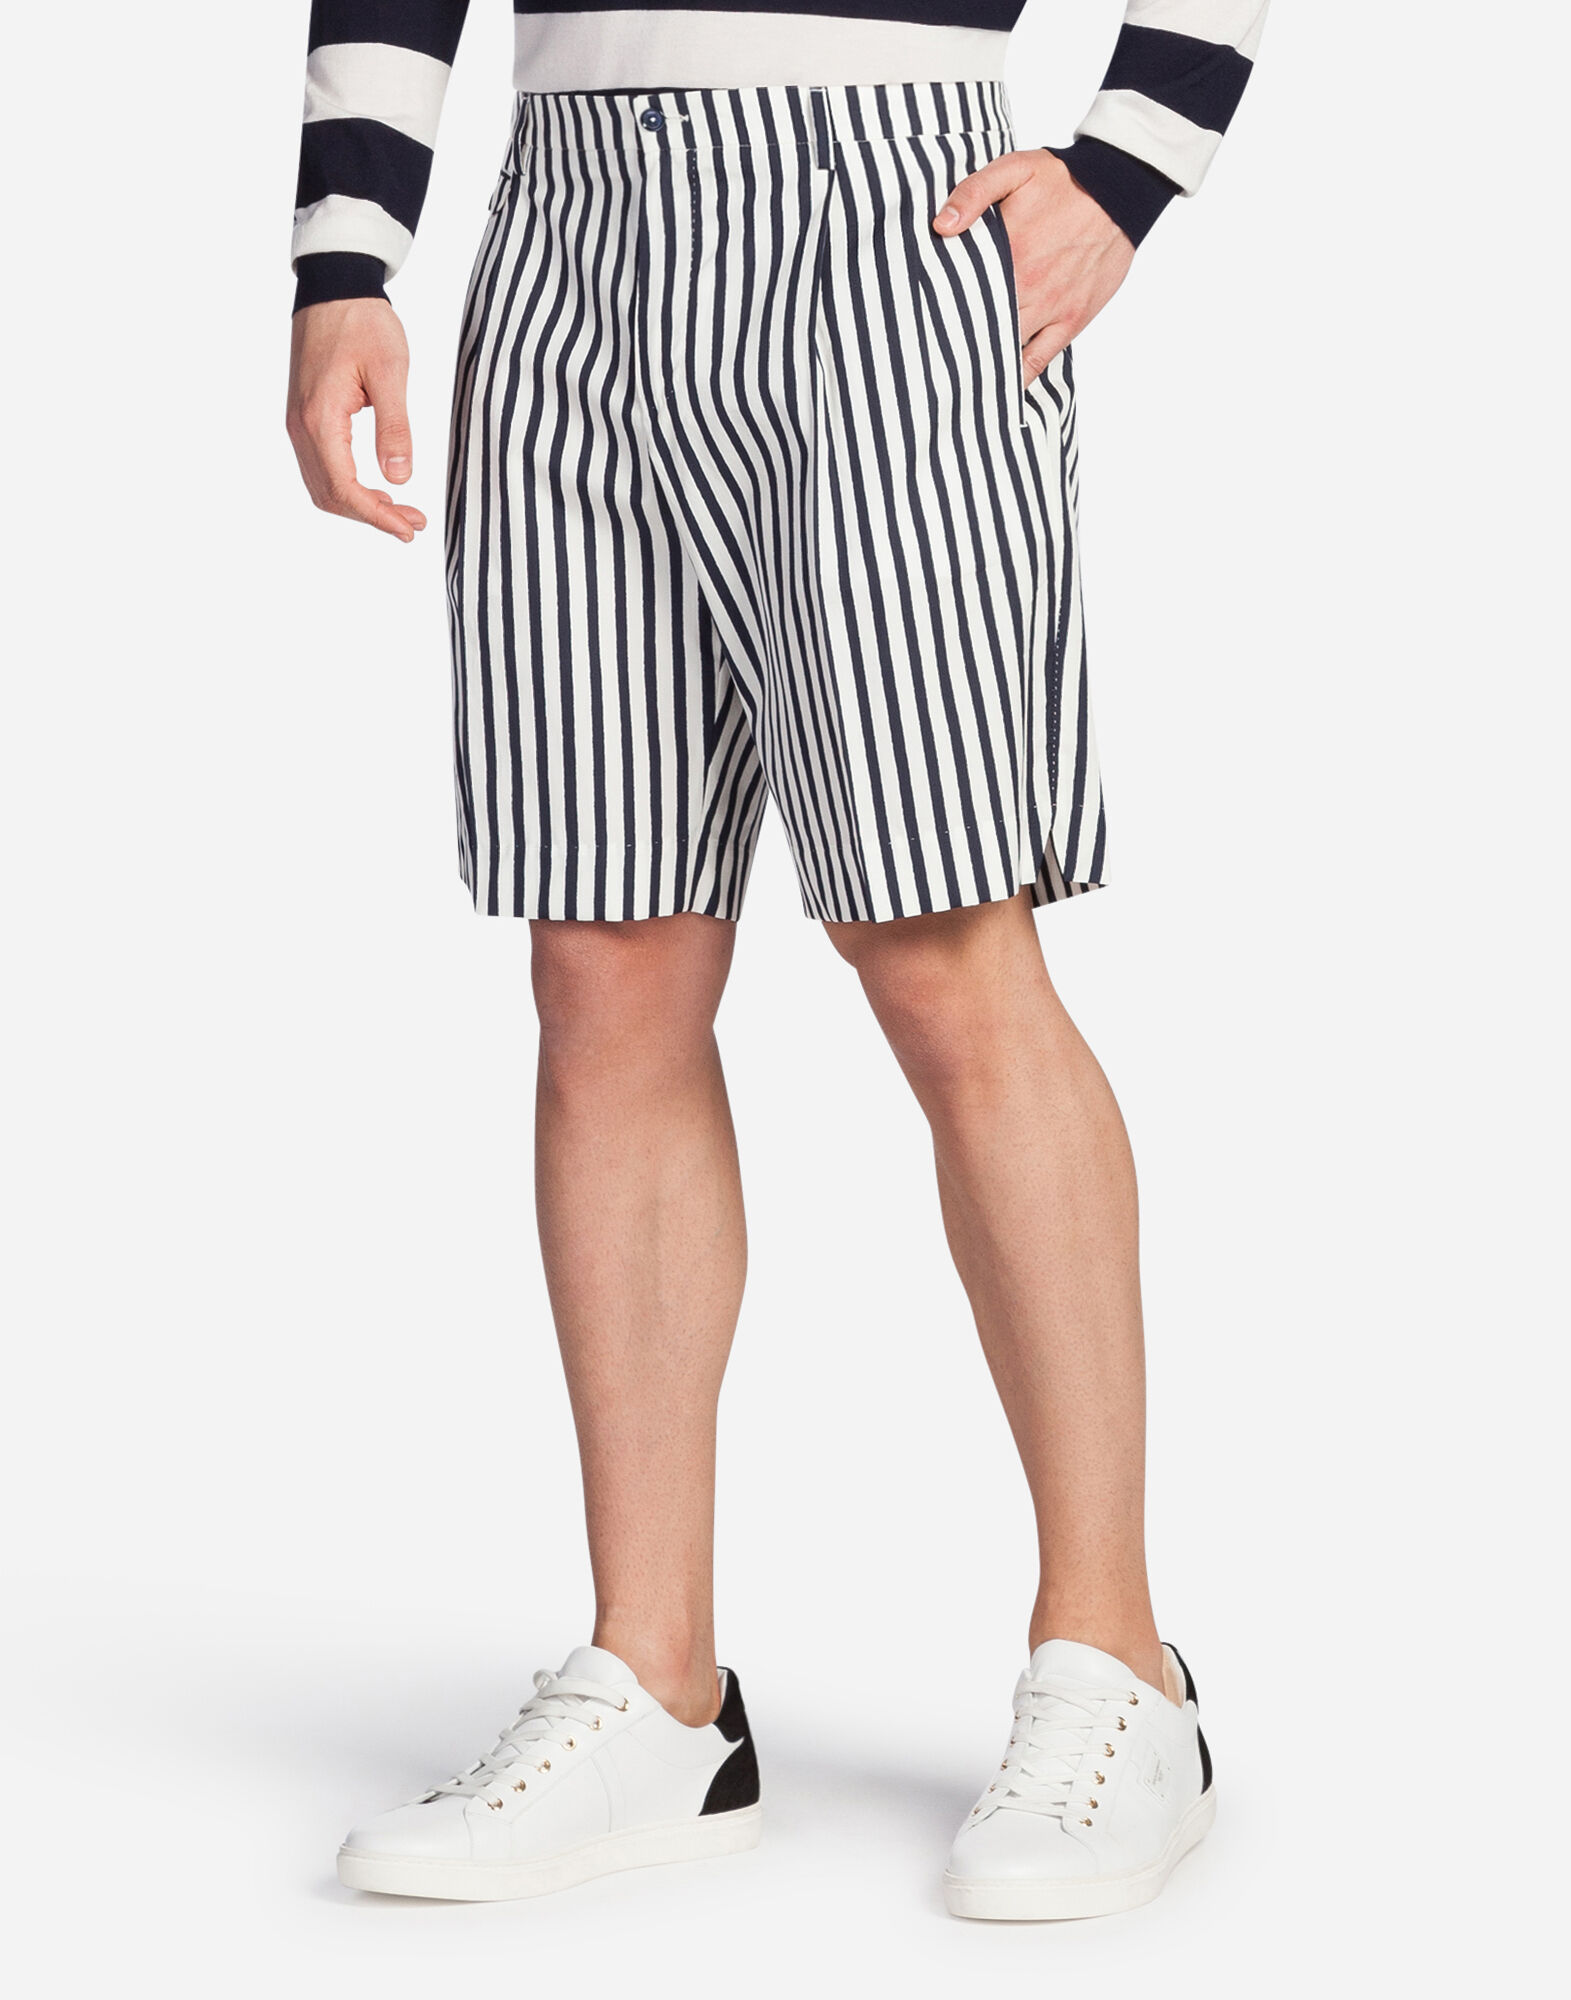 BERMUDA SHORTS IN PRINTED COTTON